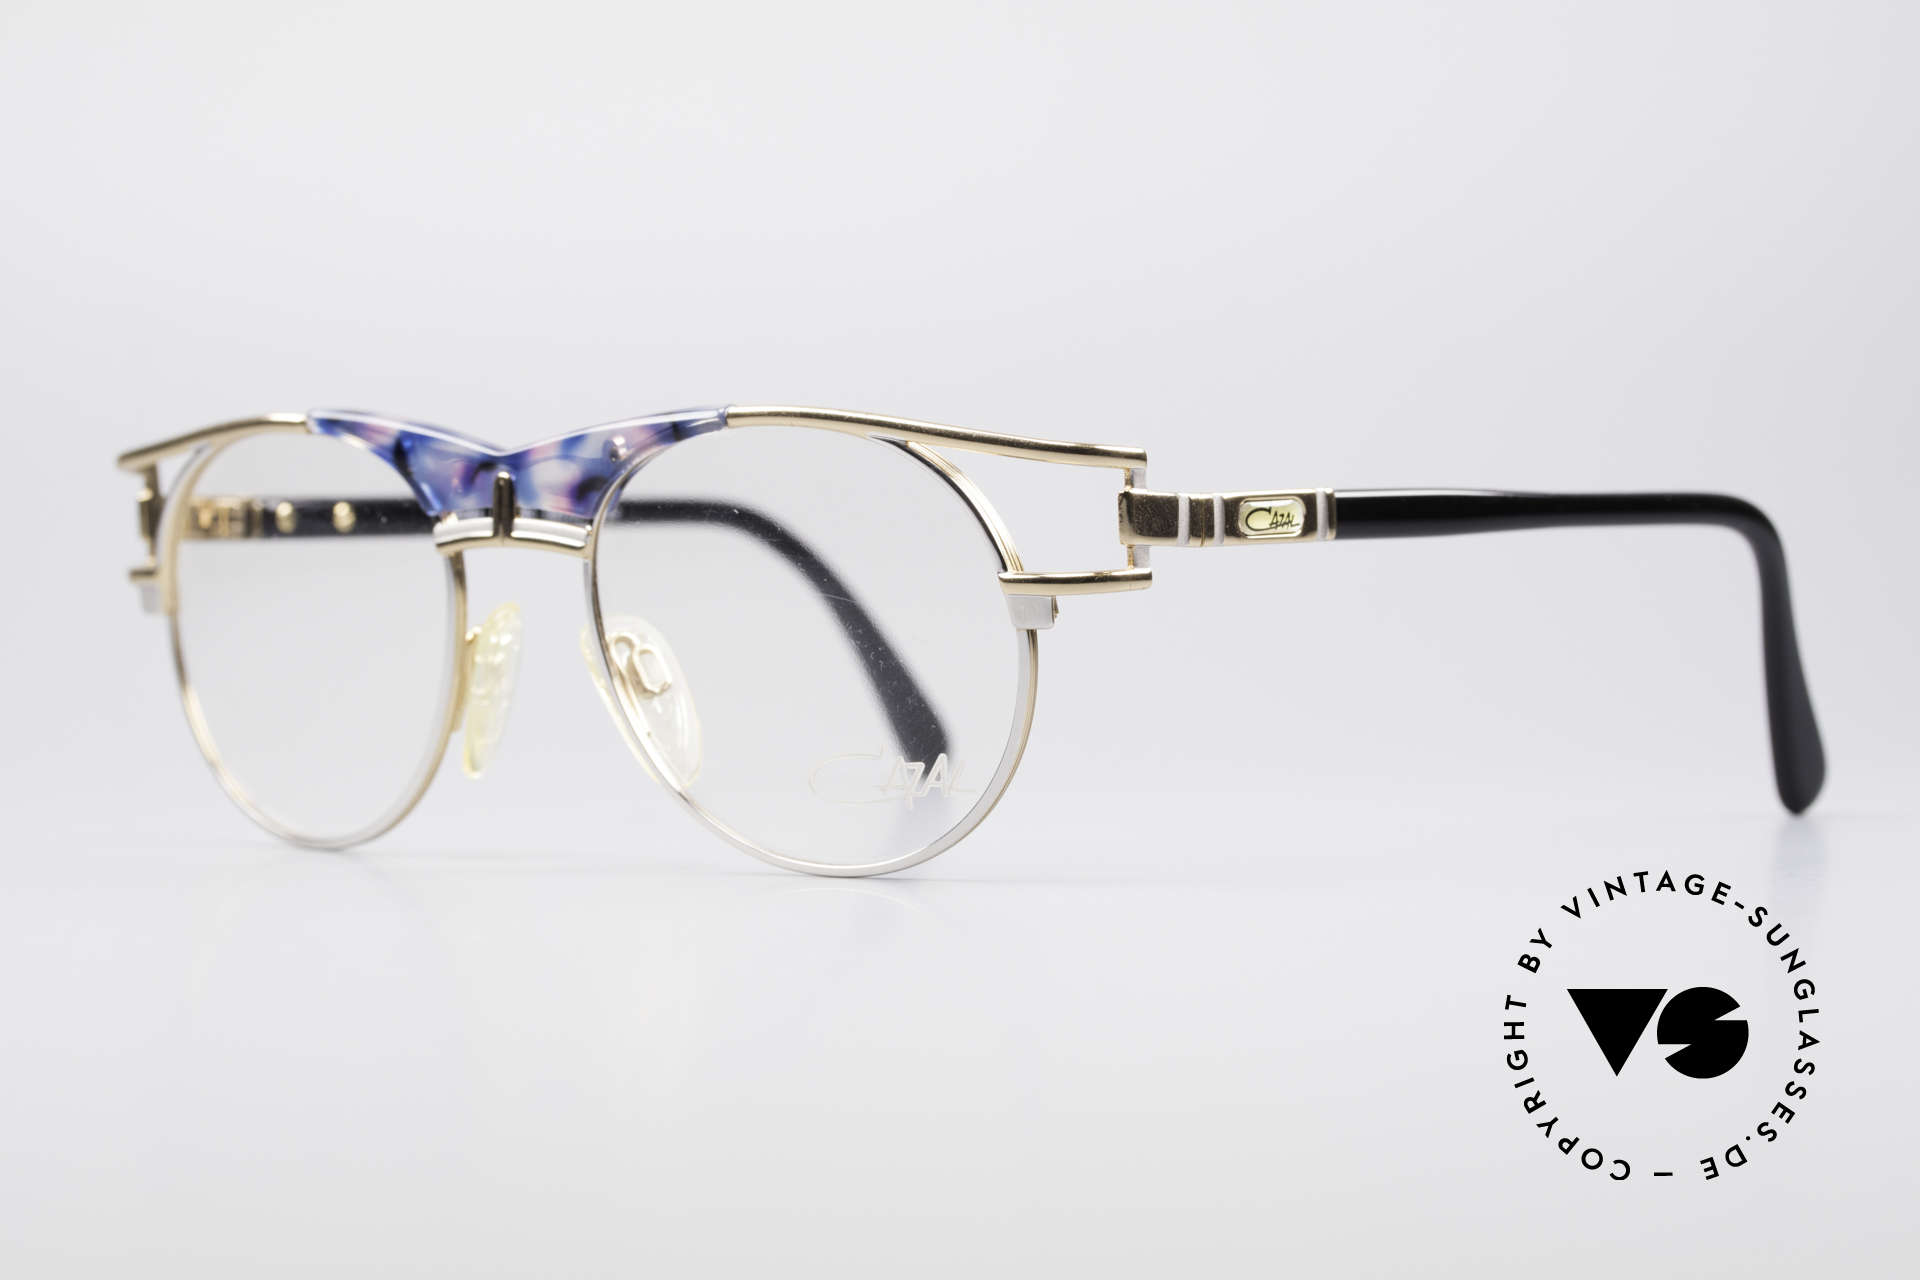 Cazal 244 Iconic Vintage Eyeglasses, fantastic combination of colours and materials, Made for Men and Women